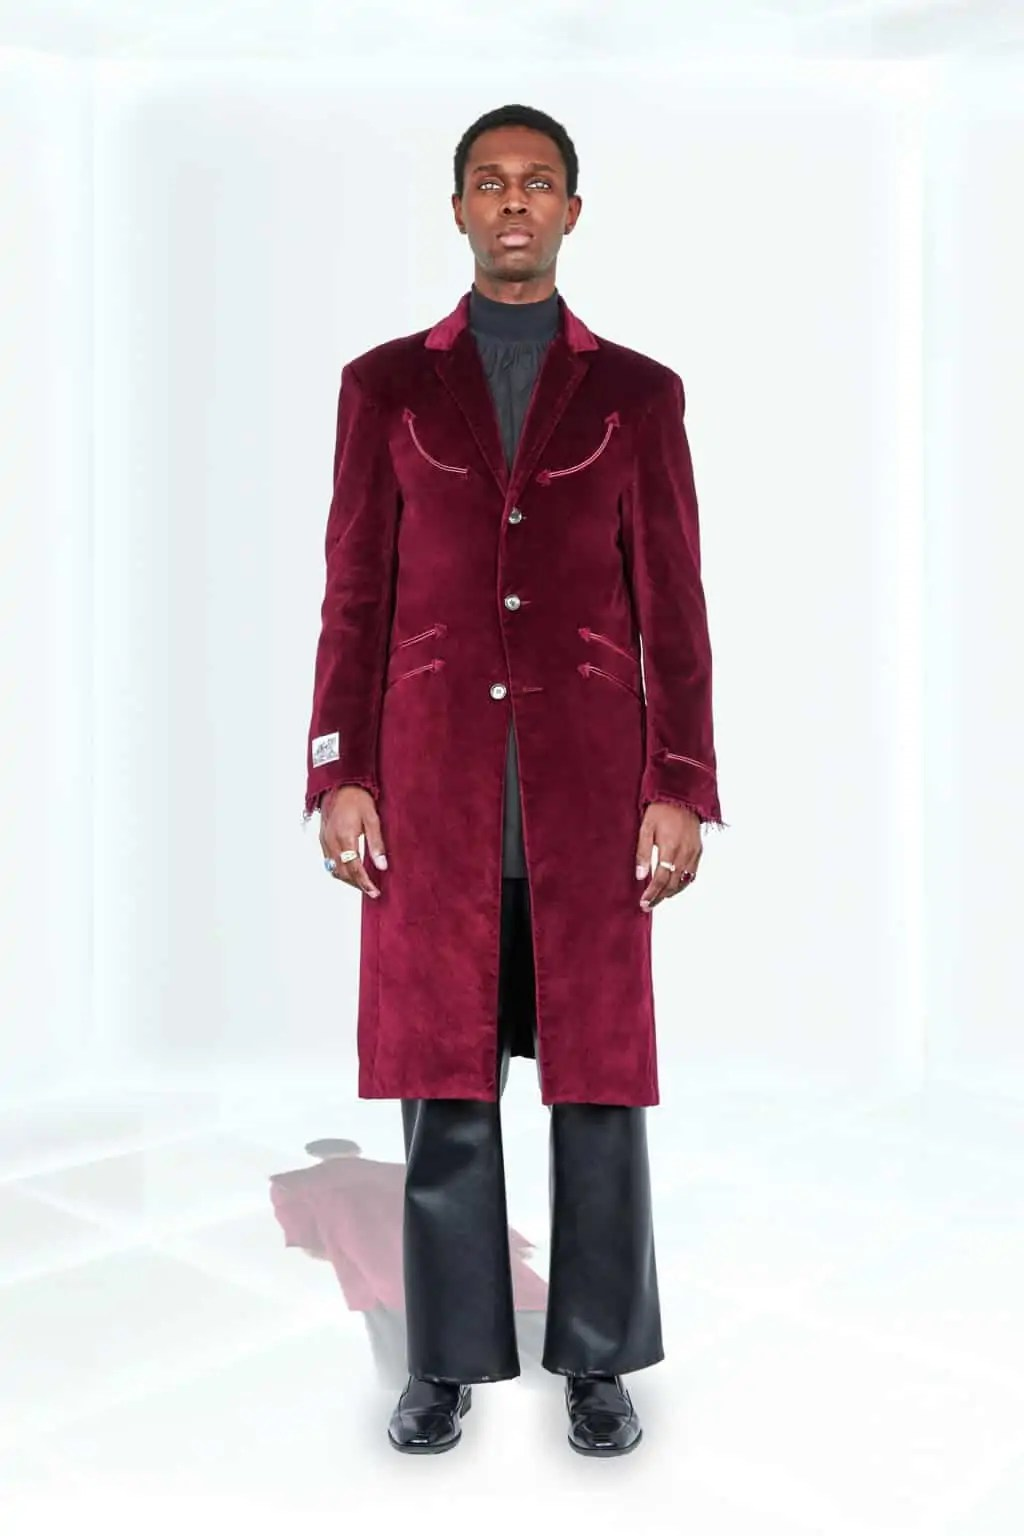 15 FALL/WINTER TRENDS FOR MEN IN 2021 574